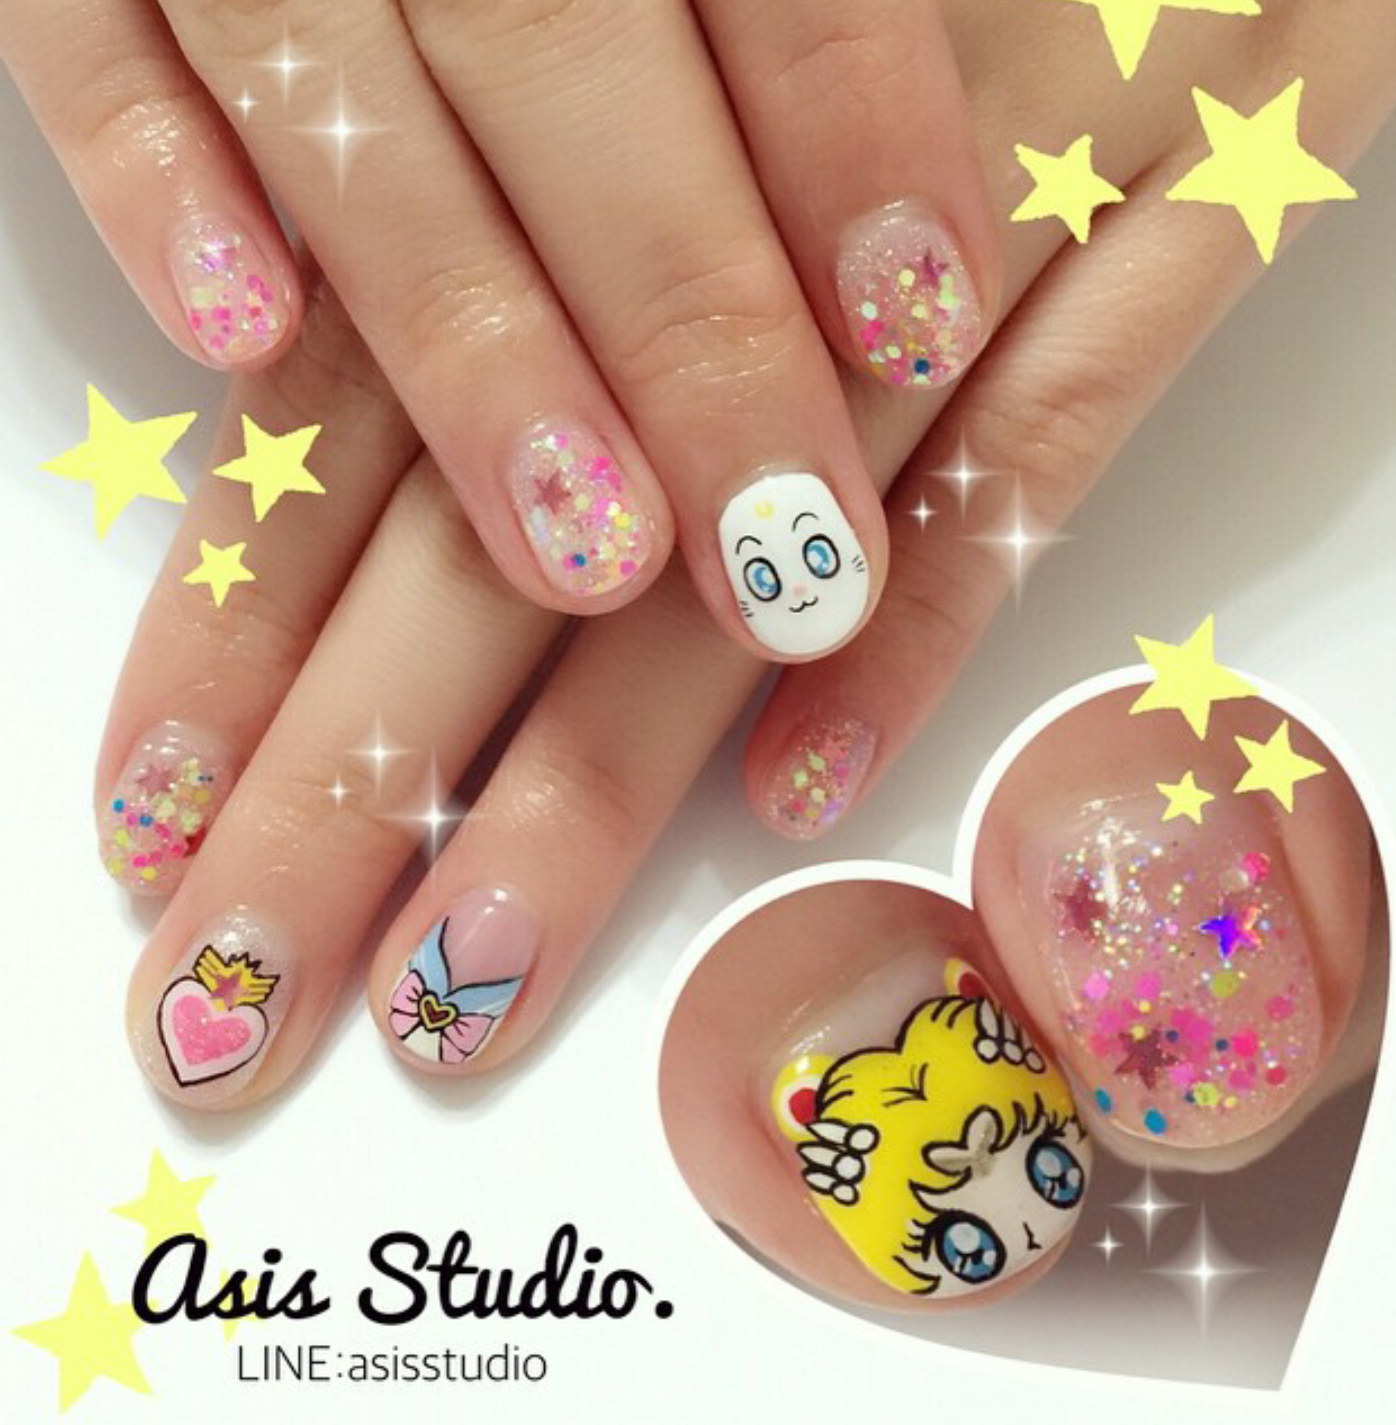 Sailor Moon nails @asisstudio | Just Nail it | Pinterest | Sailor ...